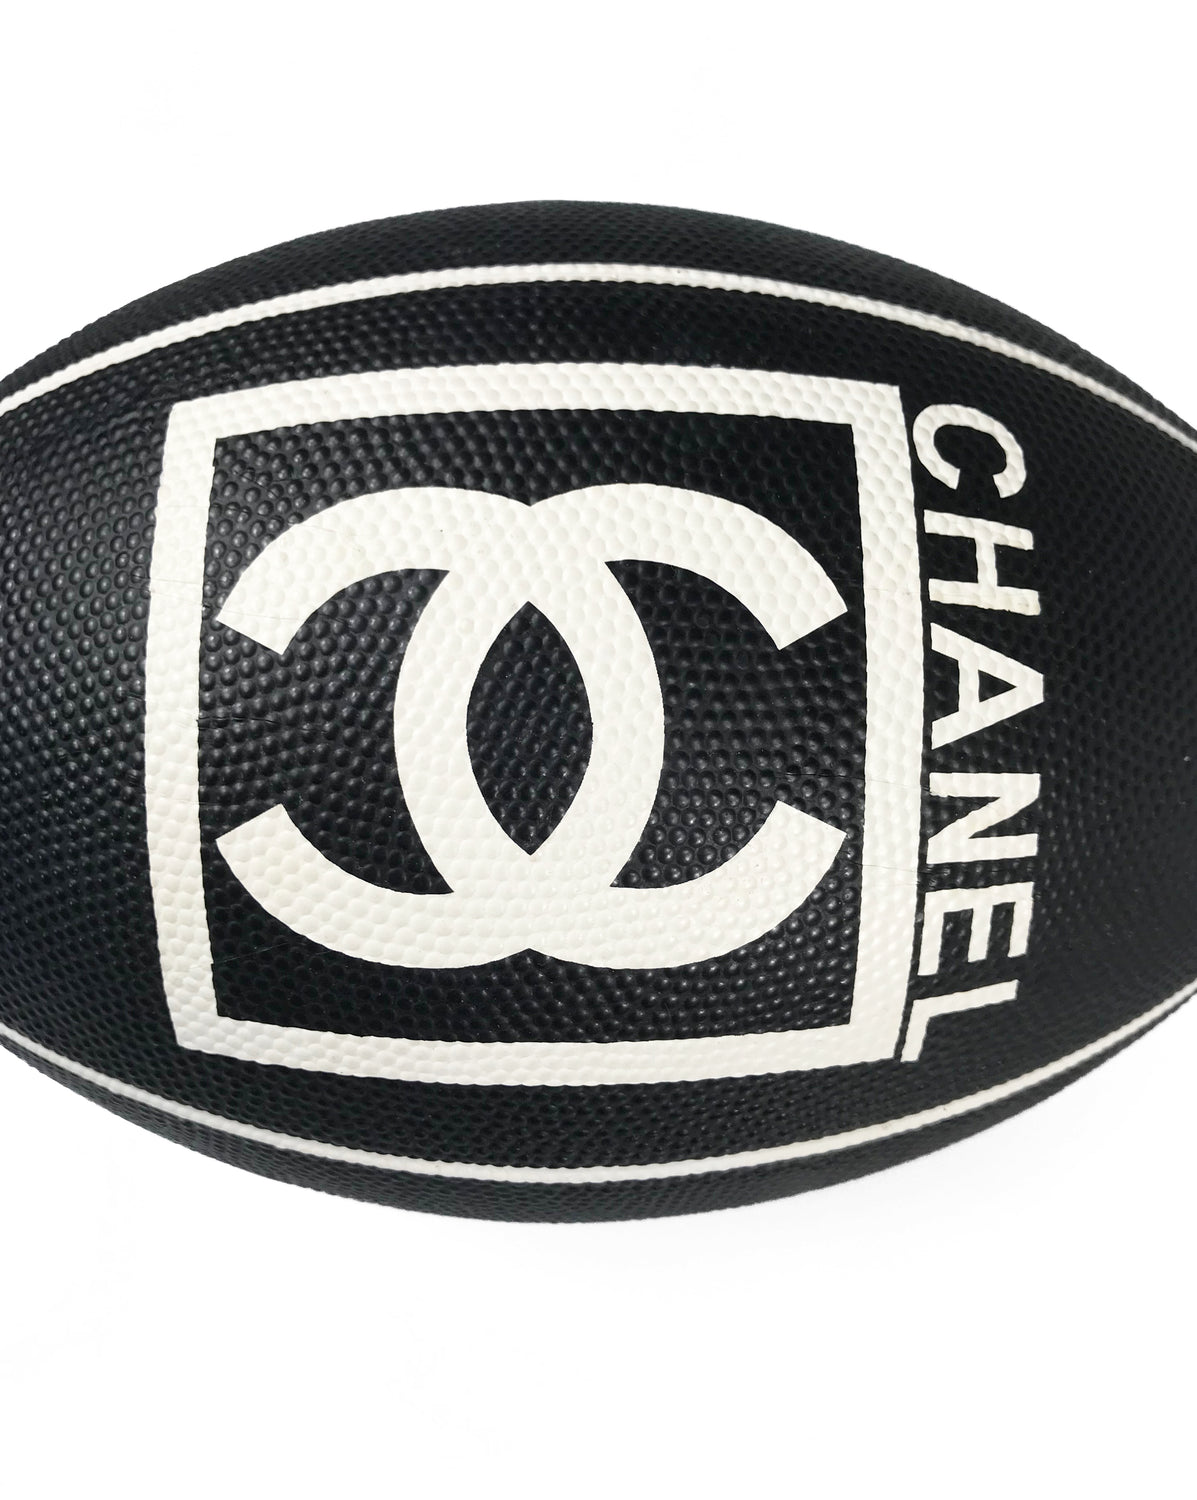 Fruit Vintage rare Chanel 2007 football. This Chanel sport logo foot ball by Karl Lagerfeld is an important Chanel collectors accessory. It features a large Chanel logo and text in black and white